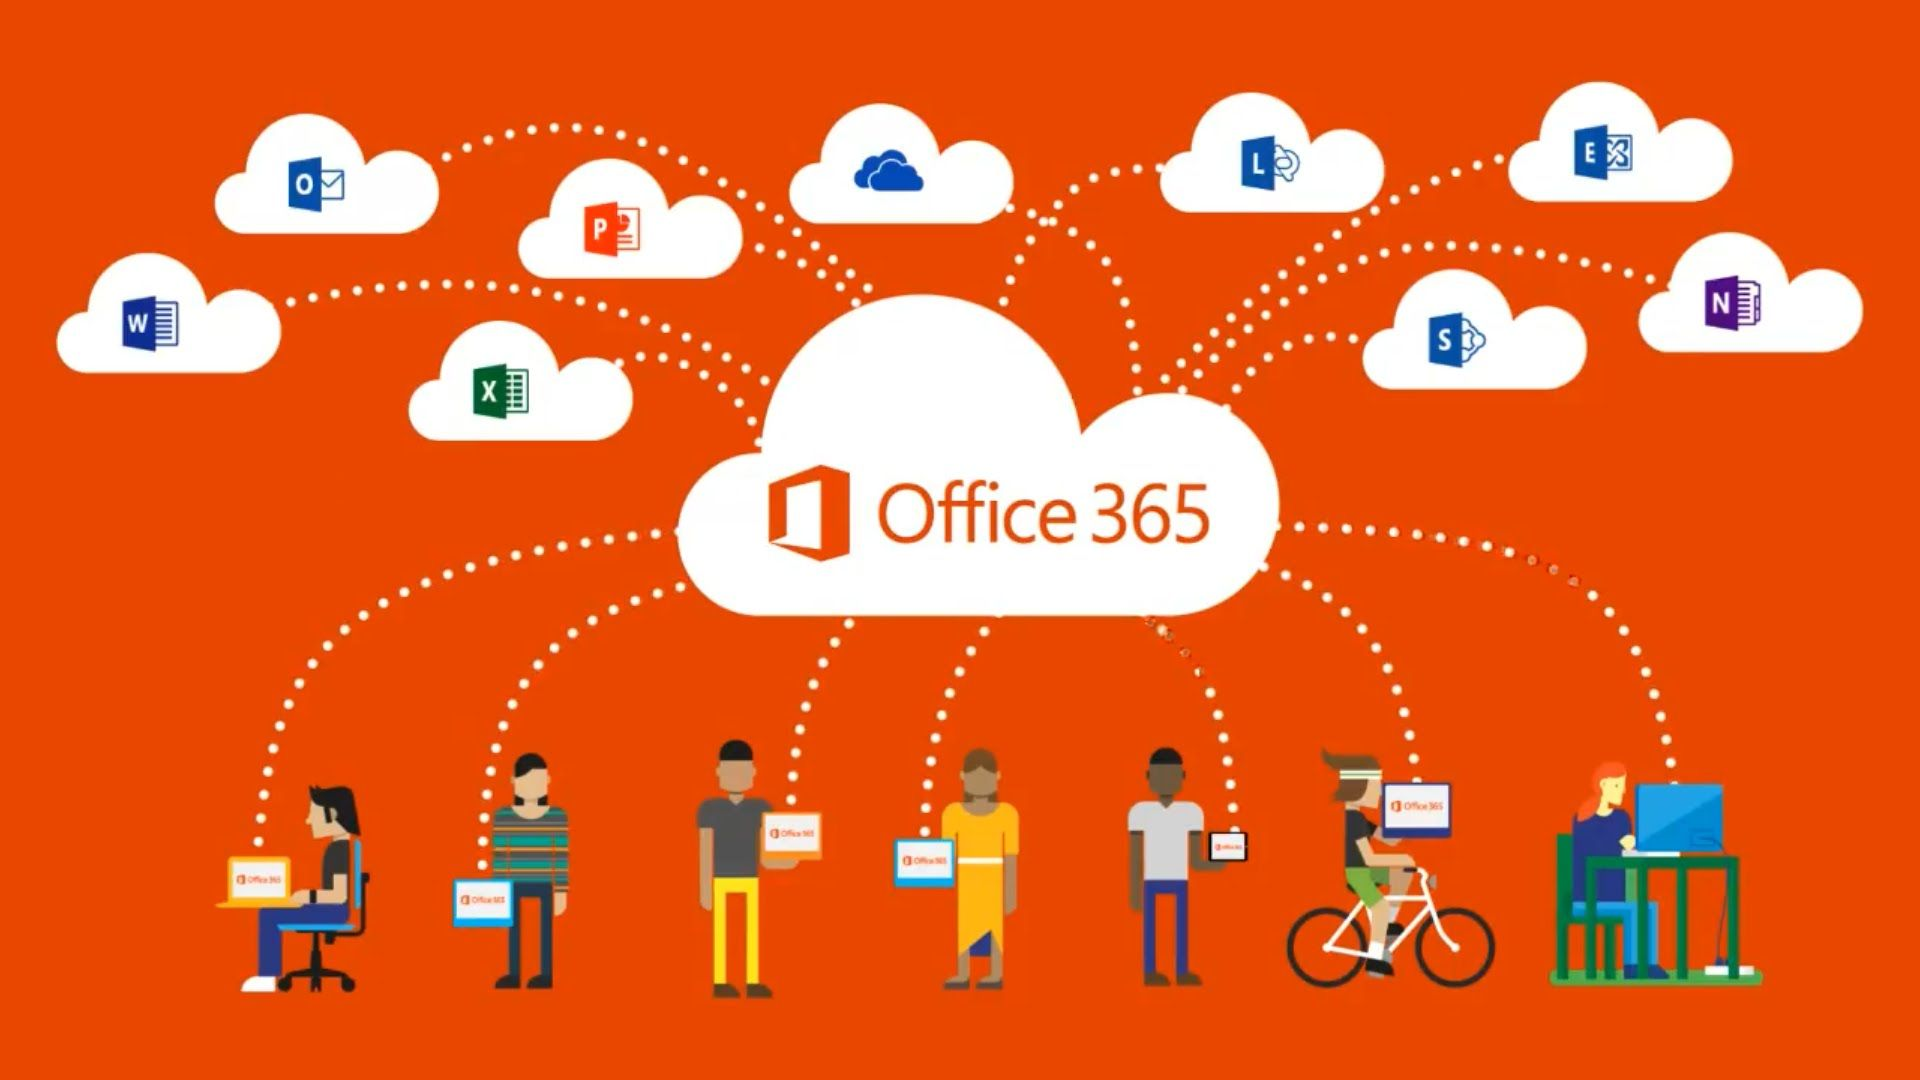 Ricoh Office 365